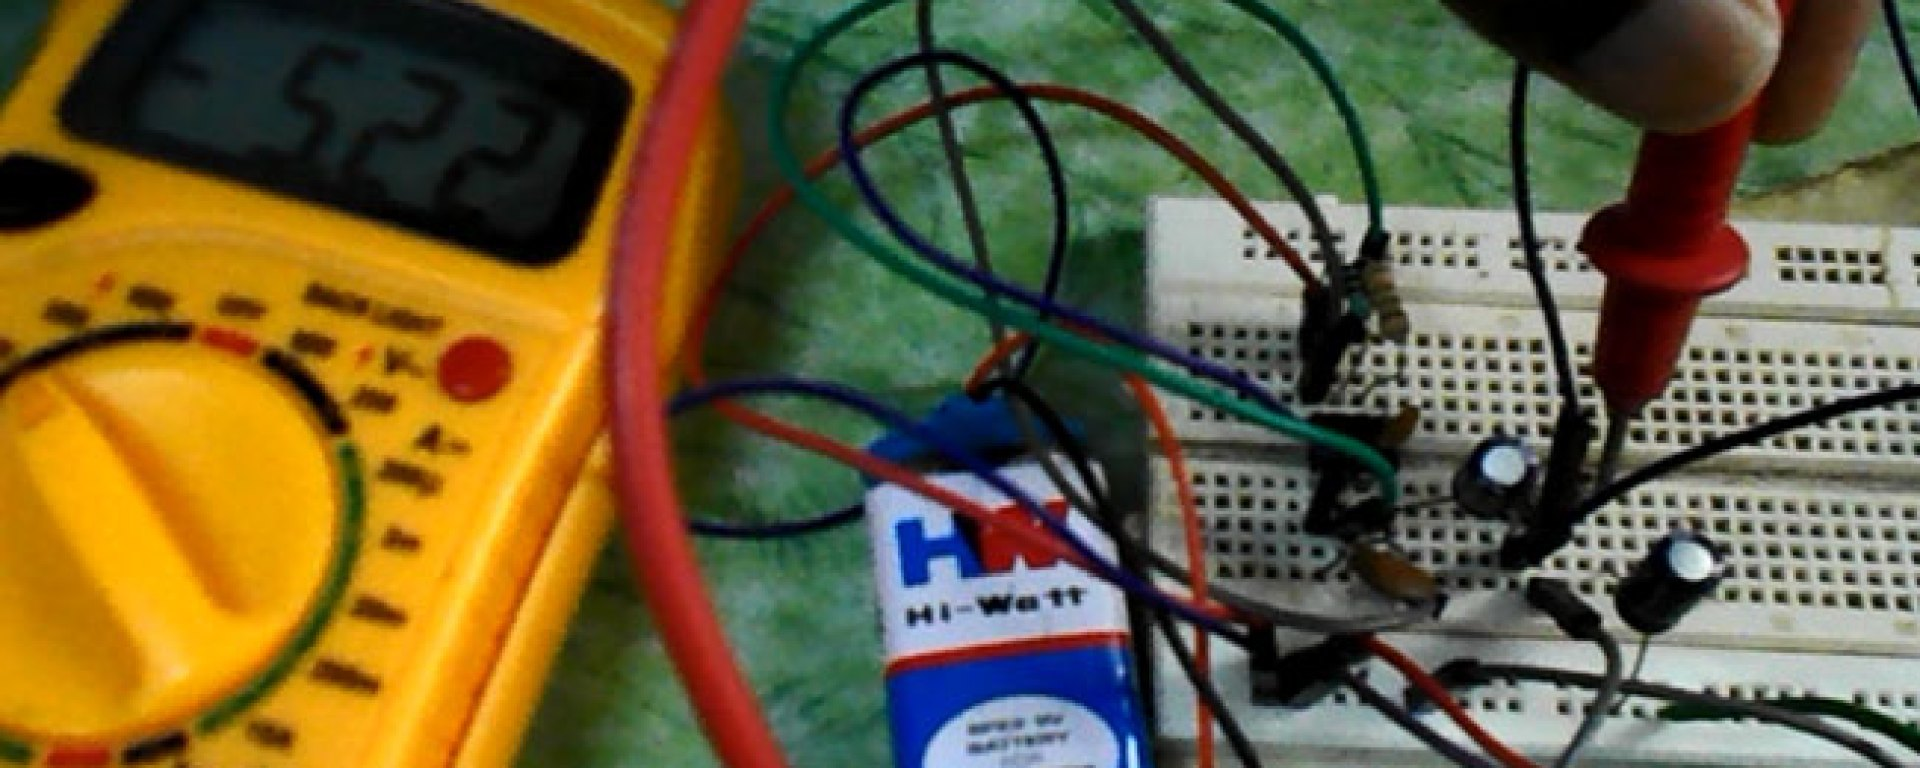 Negative Voltage Generator Technology Hacking 555 Ic Power Supply Circuit Diagram Using